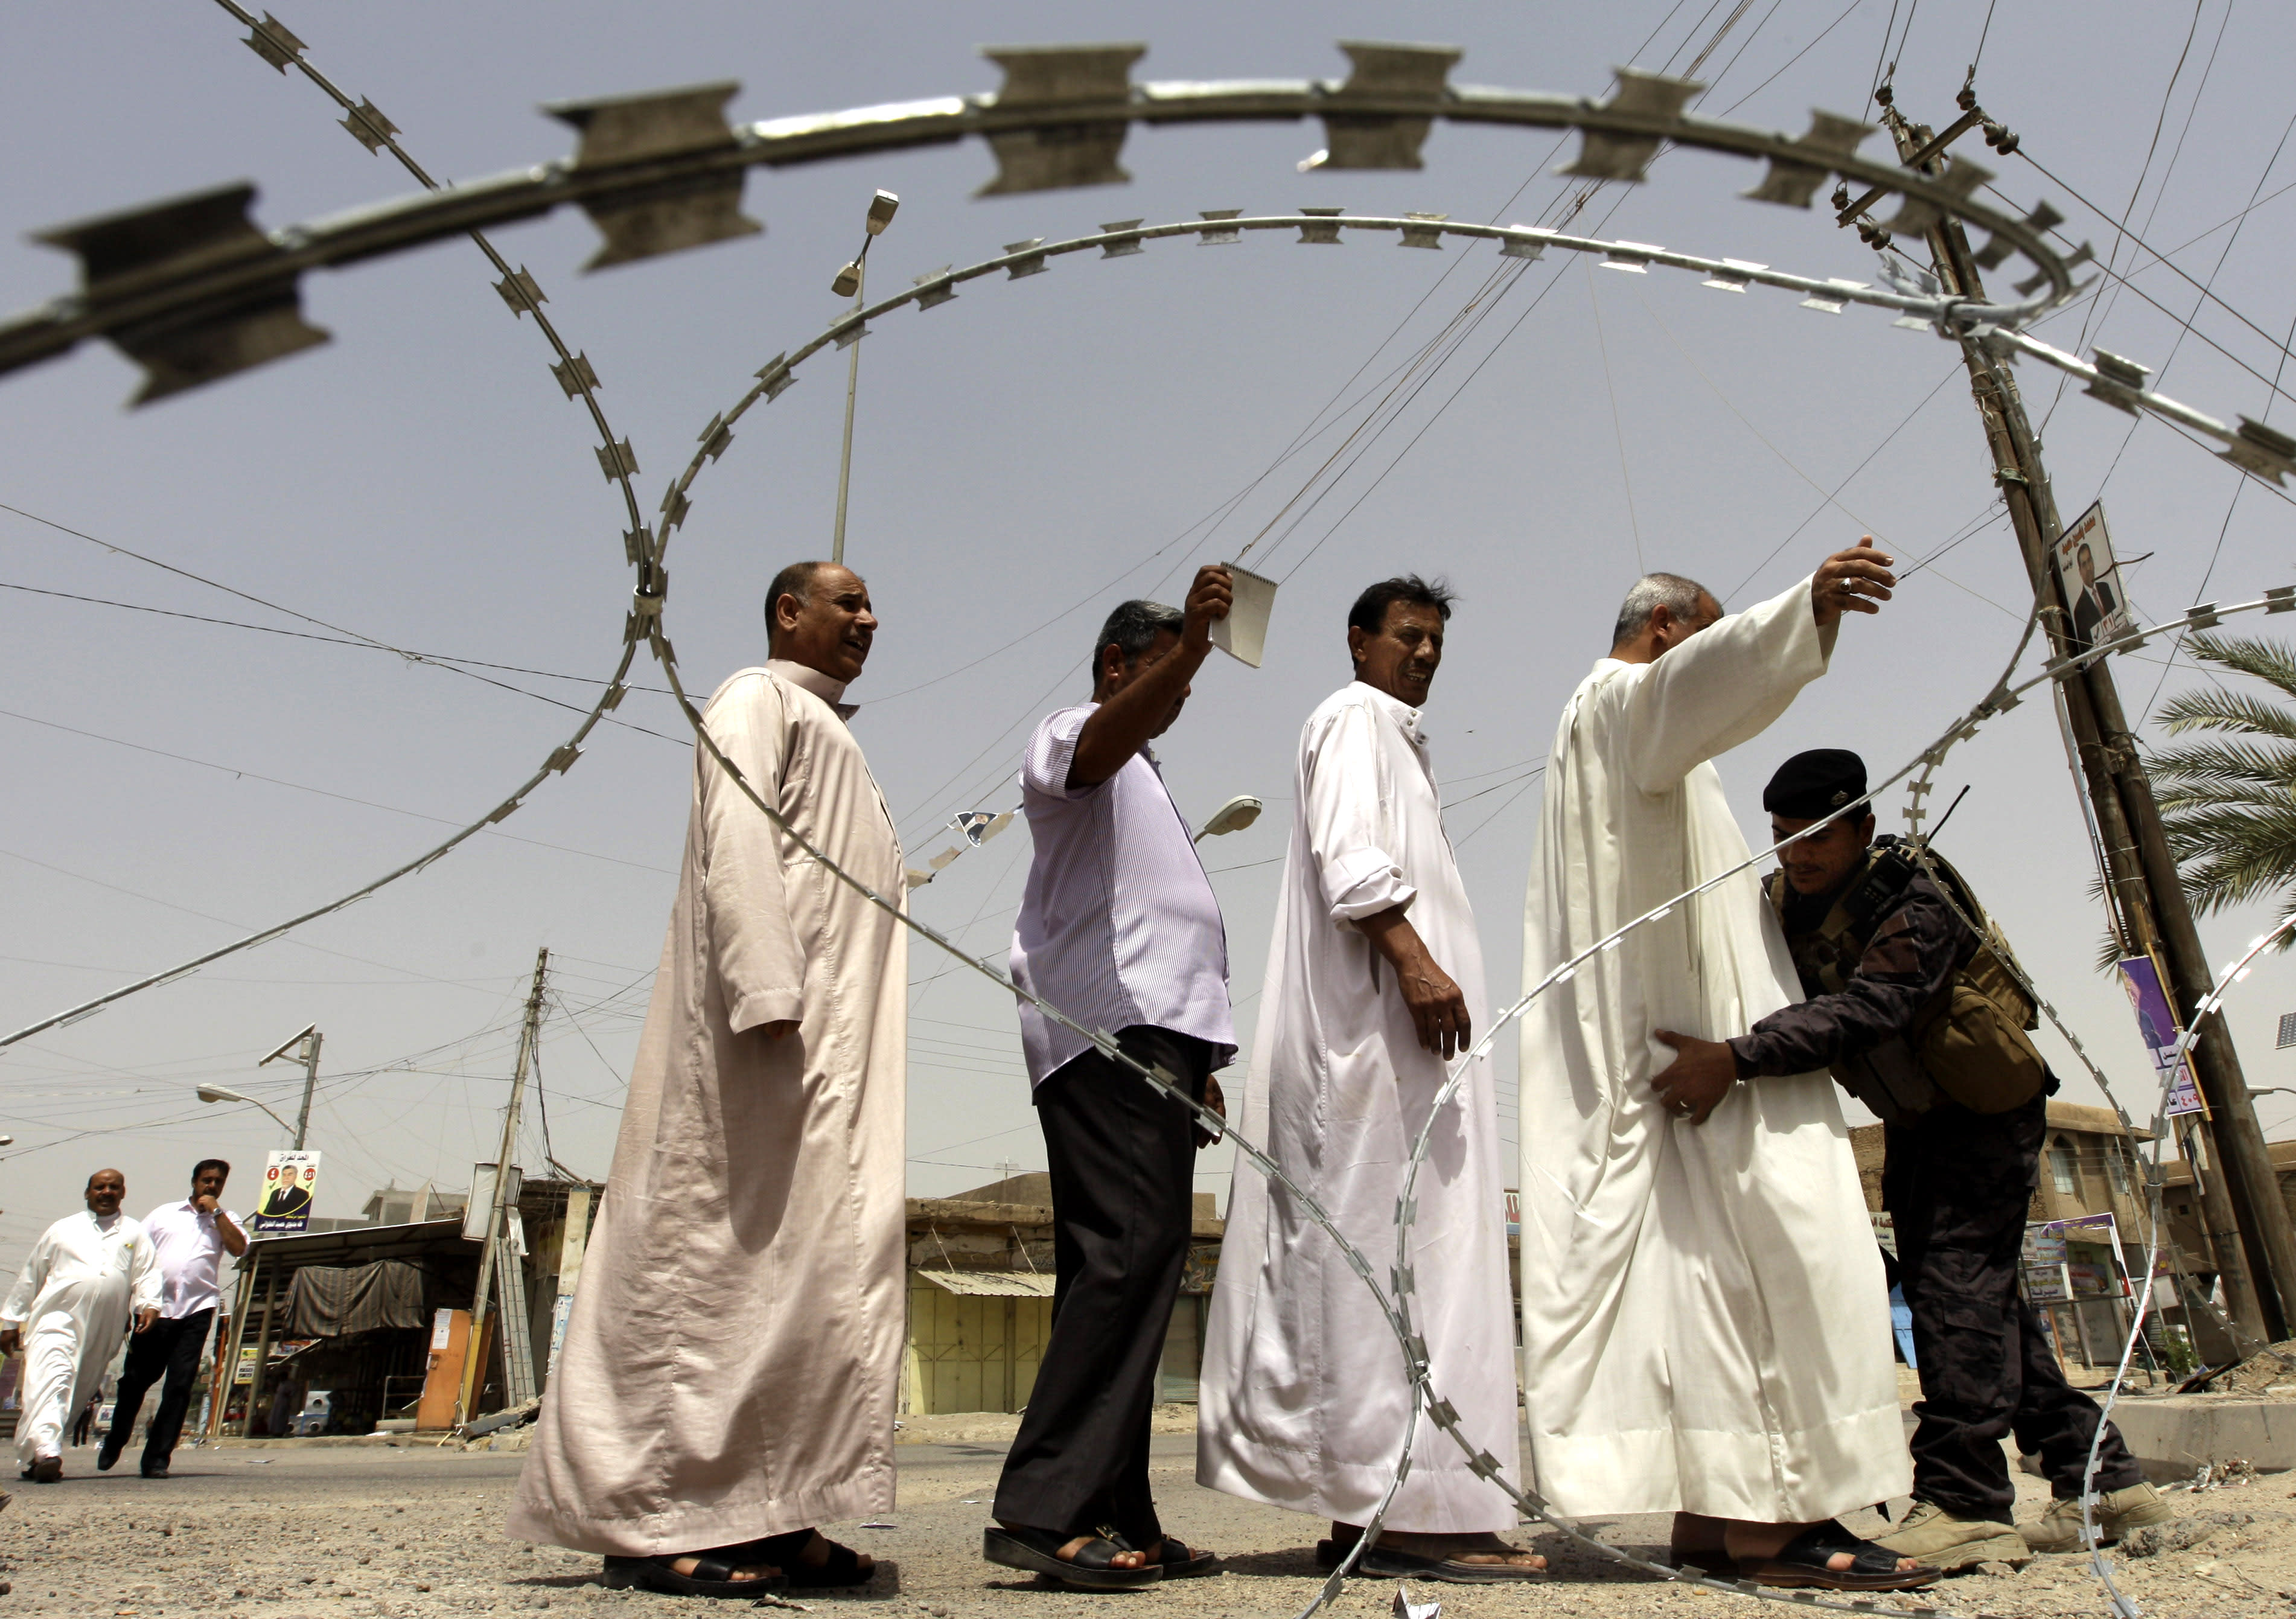 Iraqi citizens are searched before casting their votes during the country's provincial elections in Fallujah, Iraq, Thursday, June 20, 2013. Iraqis in two Sunni-dominated provinces voted Thursday in provincial elections marked by tight security measures that left streets in former insurgent strongholds largely deserted. (AP Photo/Khalid Mohammed)